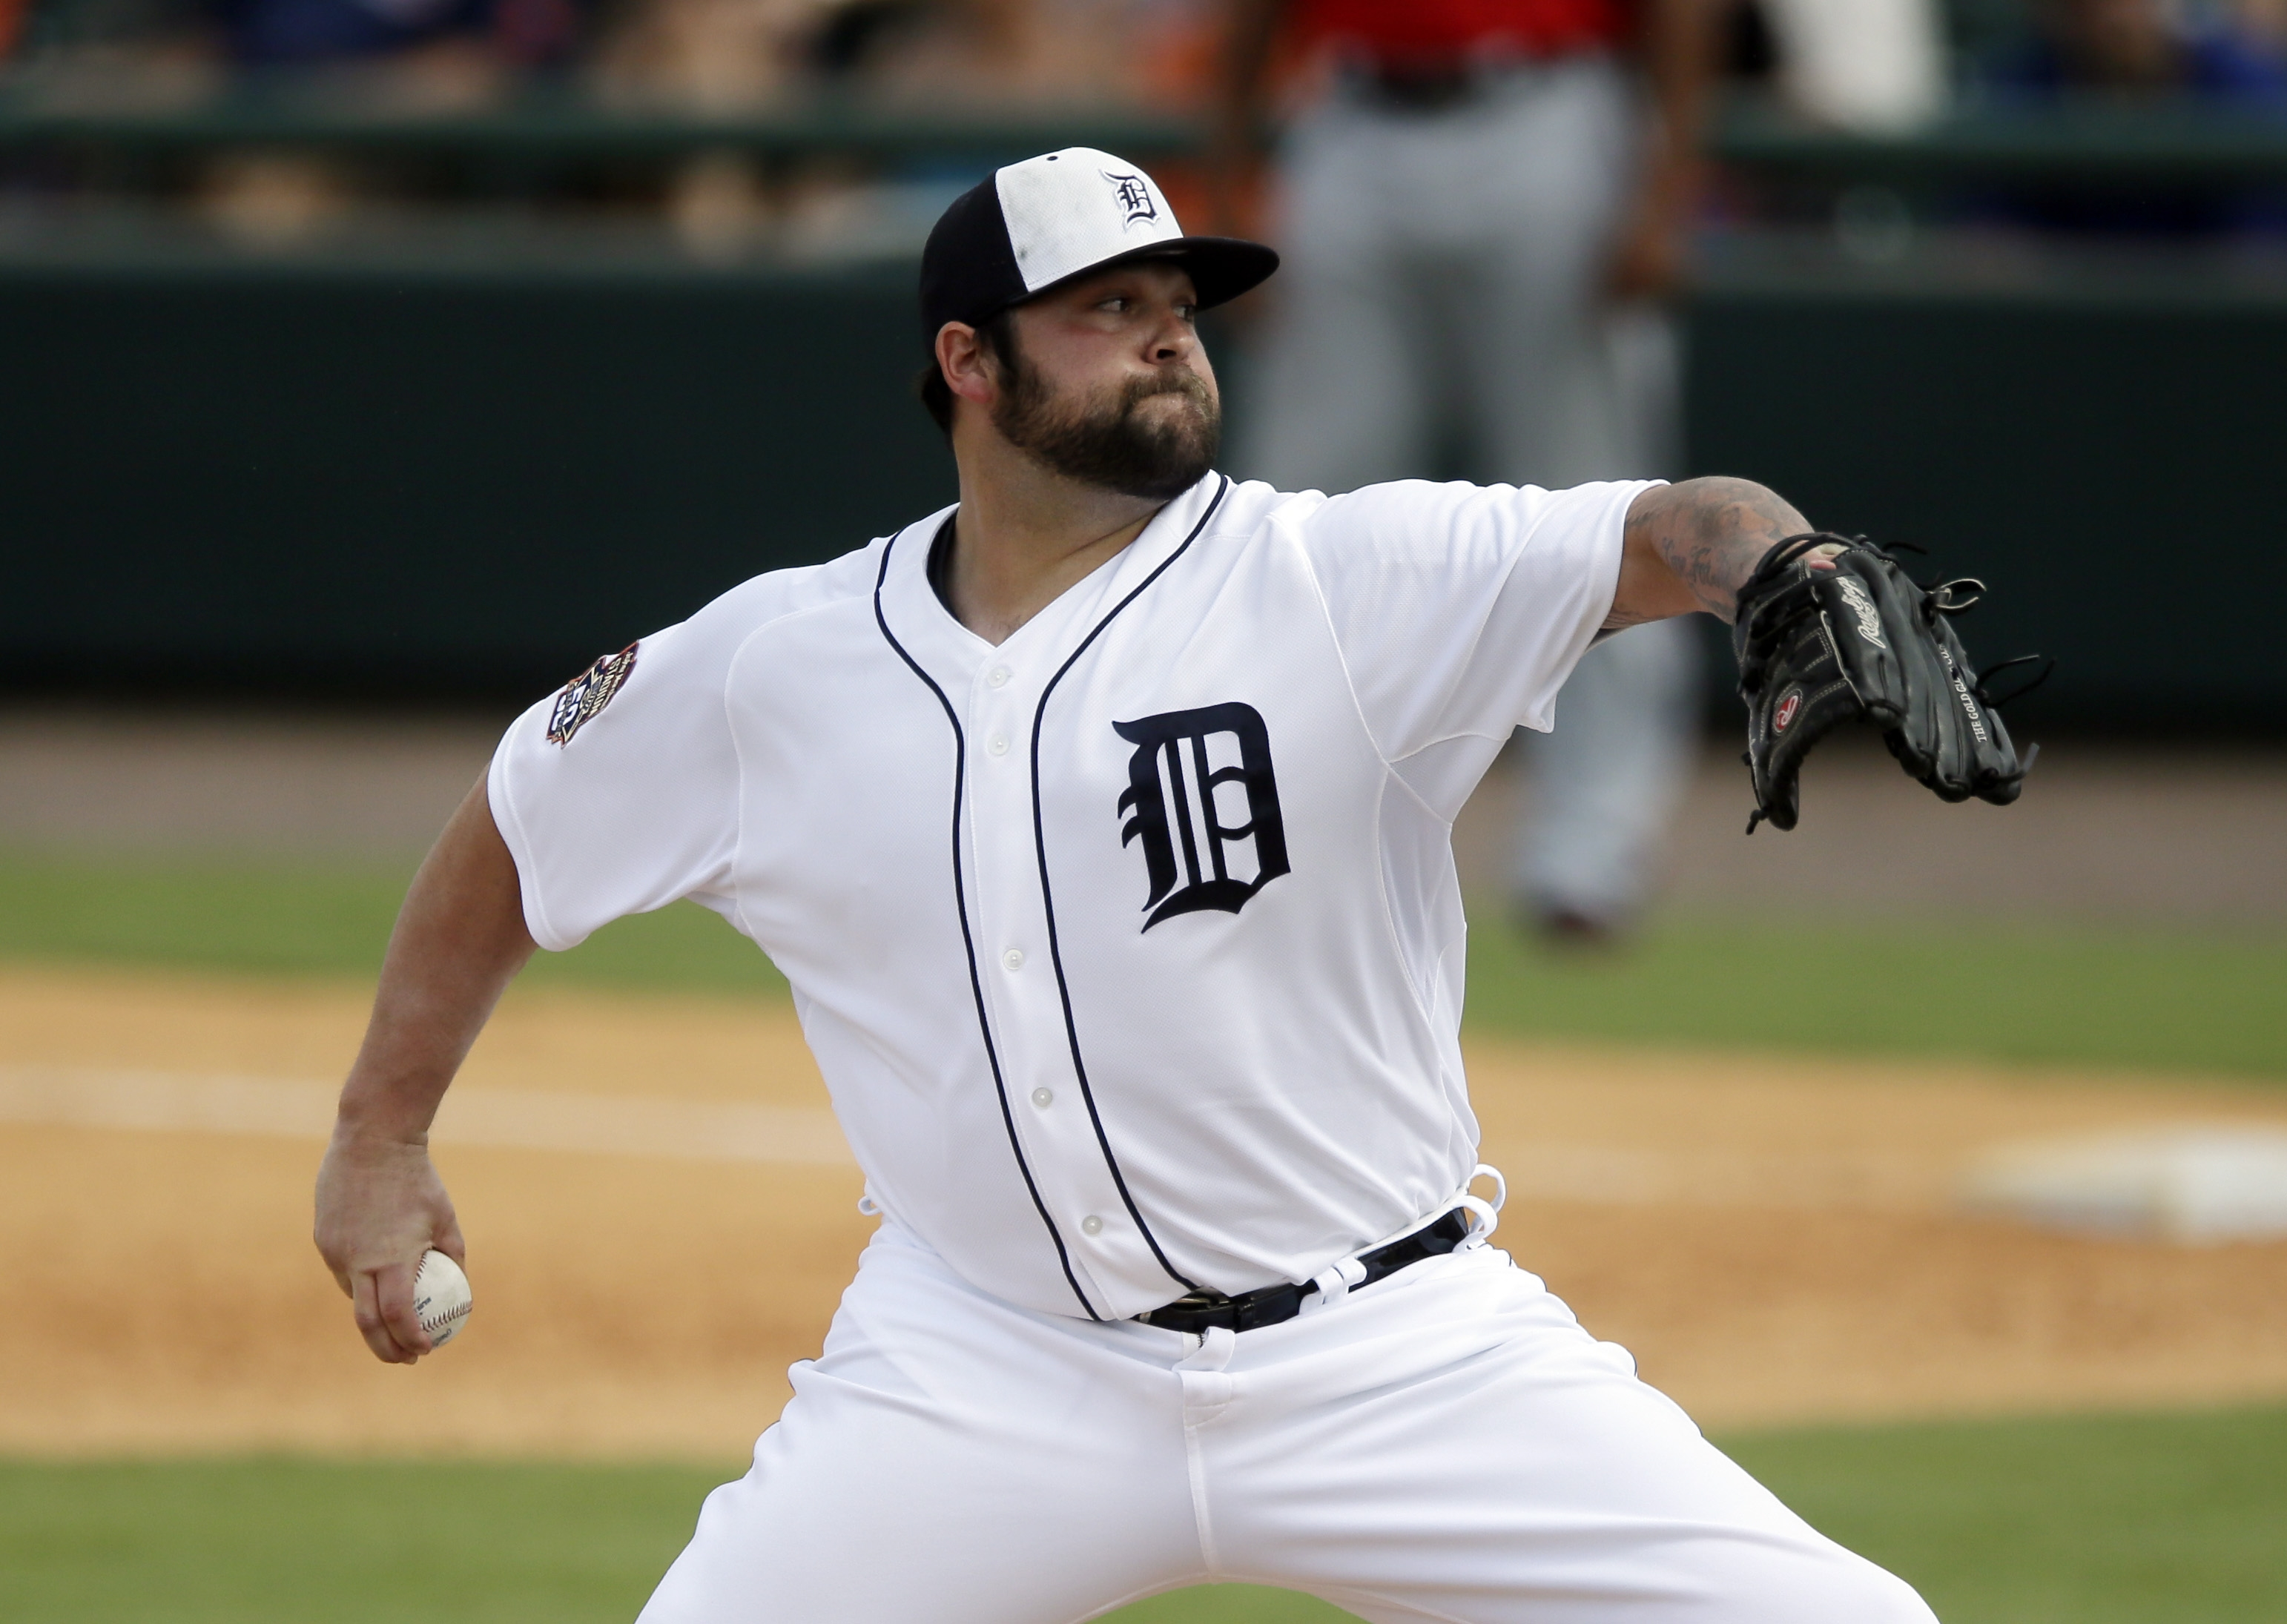 FILE - In this March 22, 2015, Detroit Tigers relief pitcher Joba Chamberlain throws during a spring training exhibition baseball game against the Washington Nationals in Lakeland, Fla. The Indians have signed free agent reliever Joba Chamberlain to a min